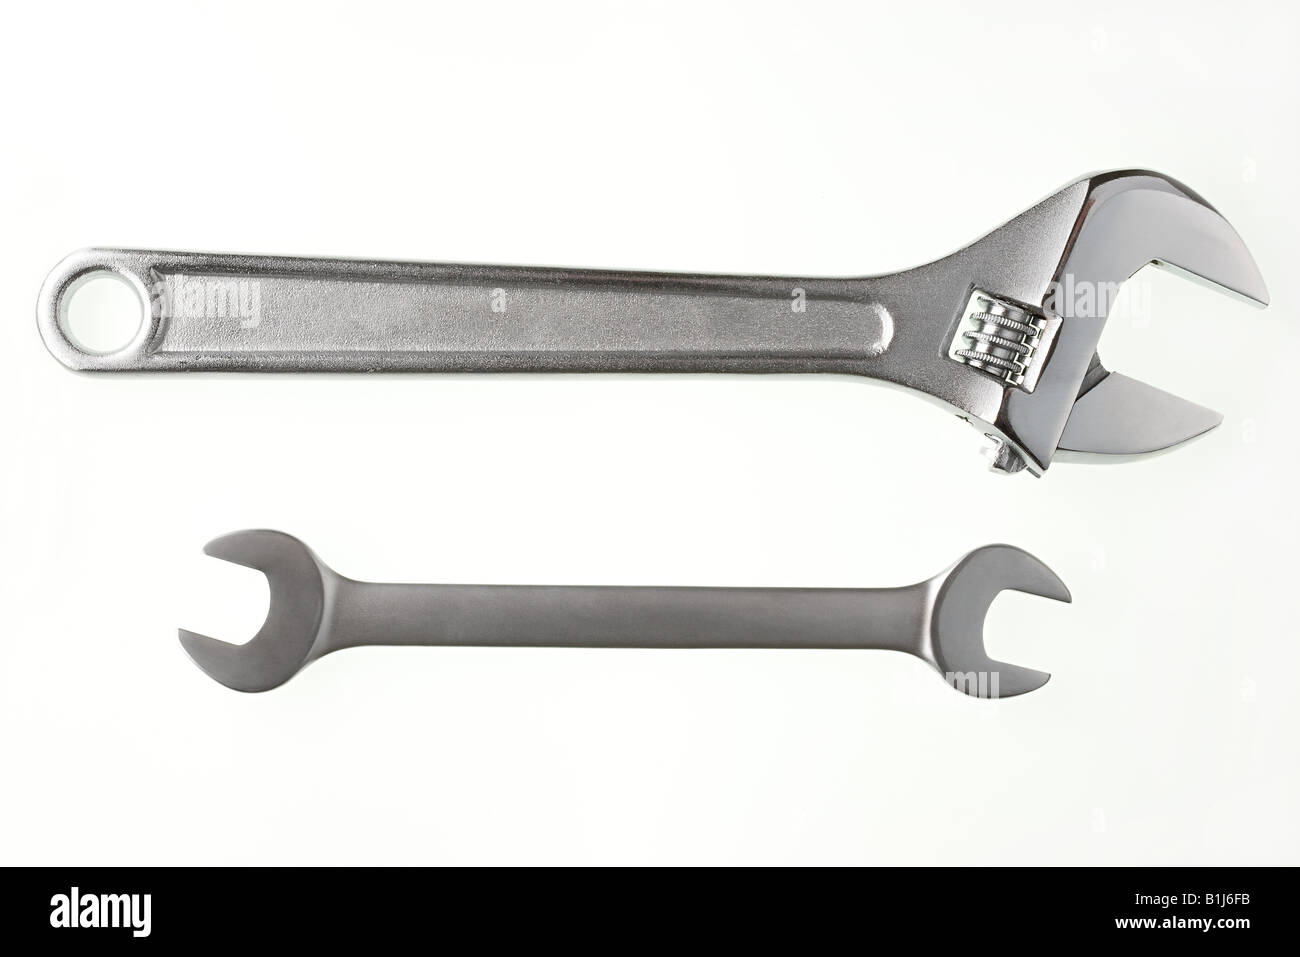 Spanners - Stock Image